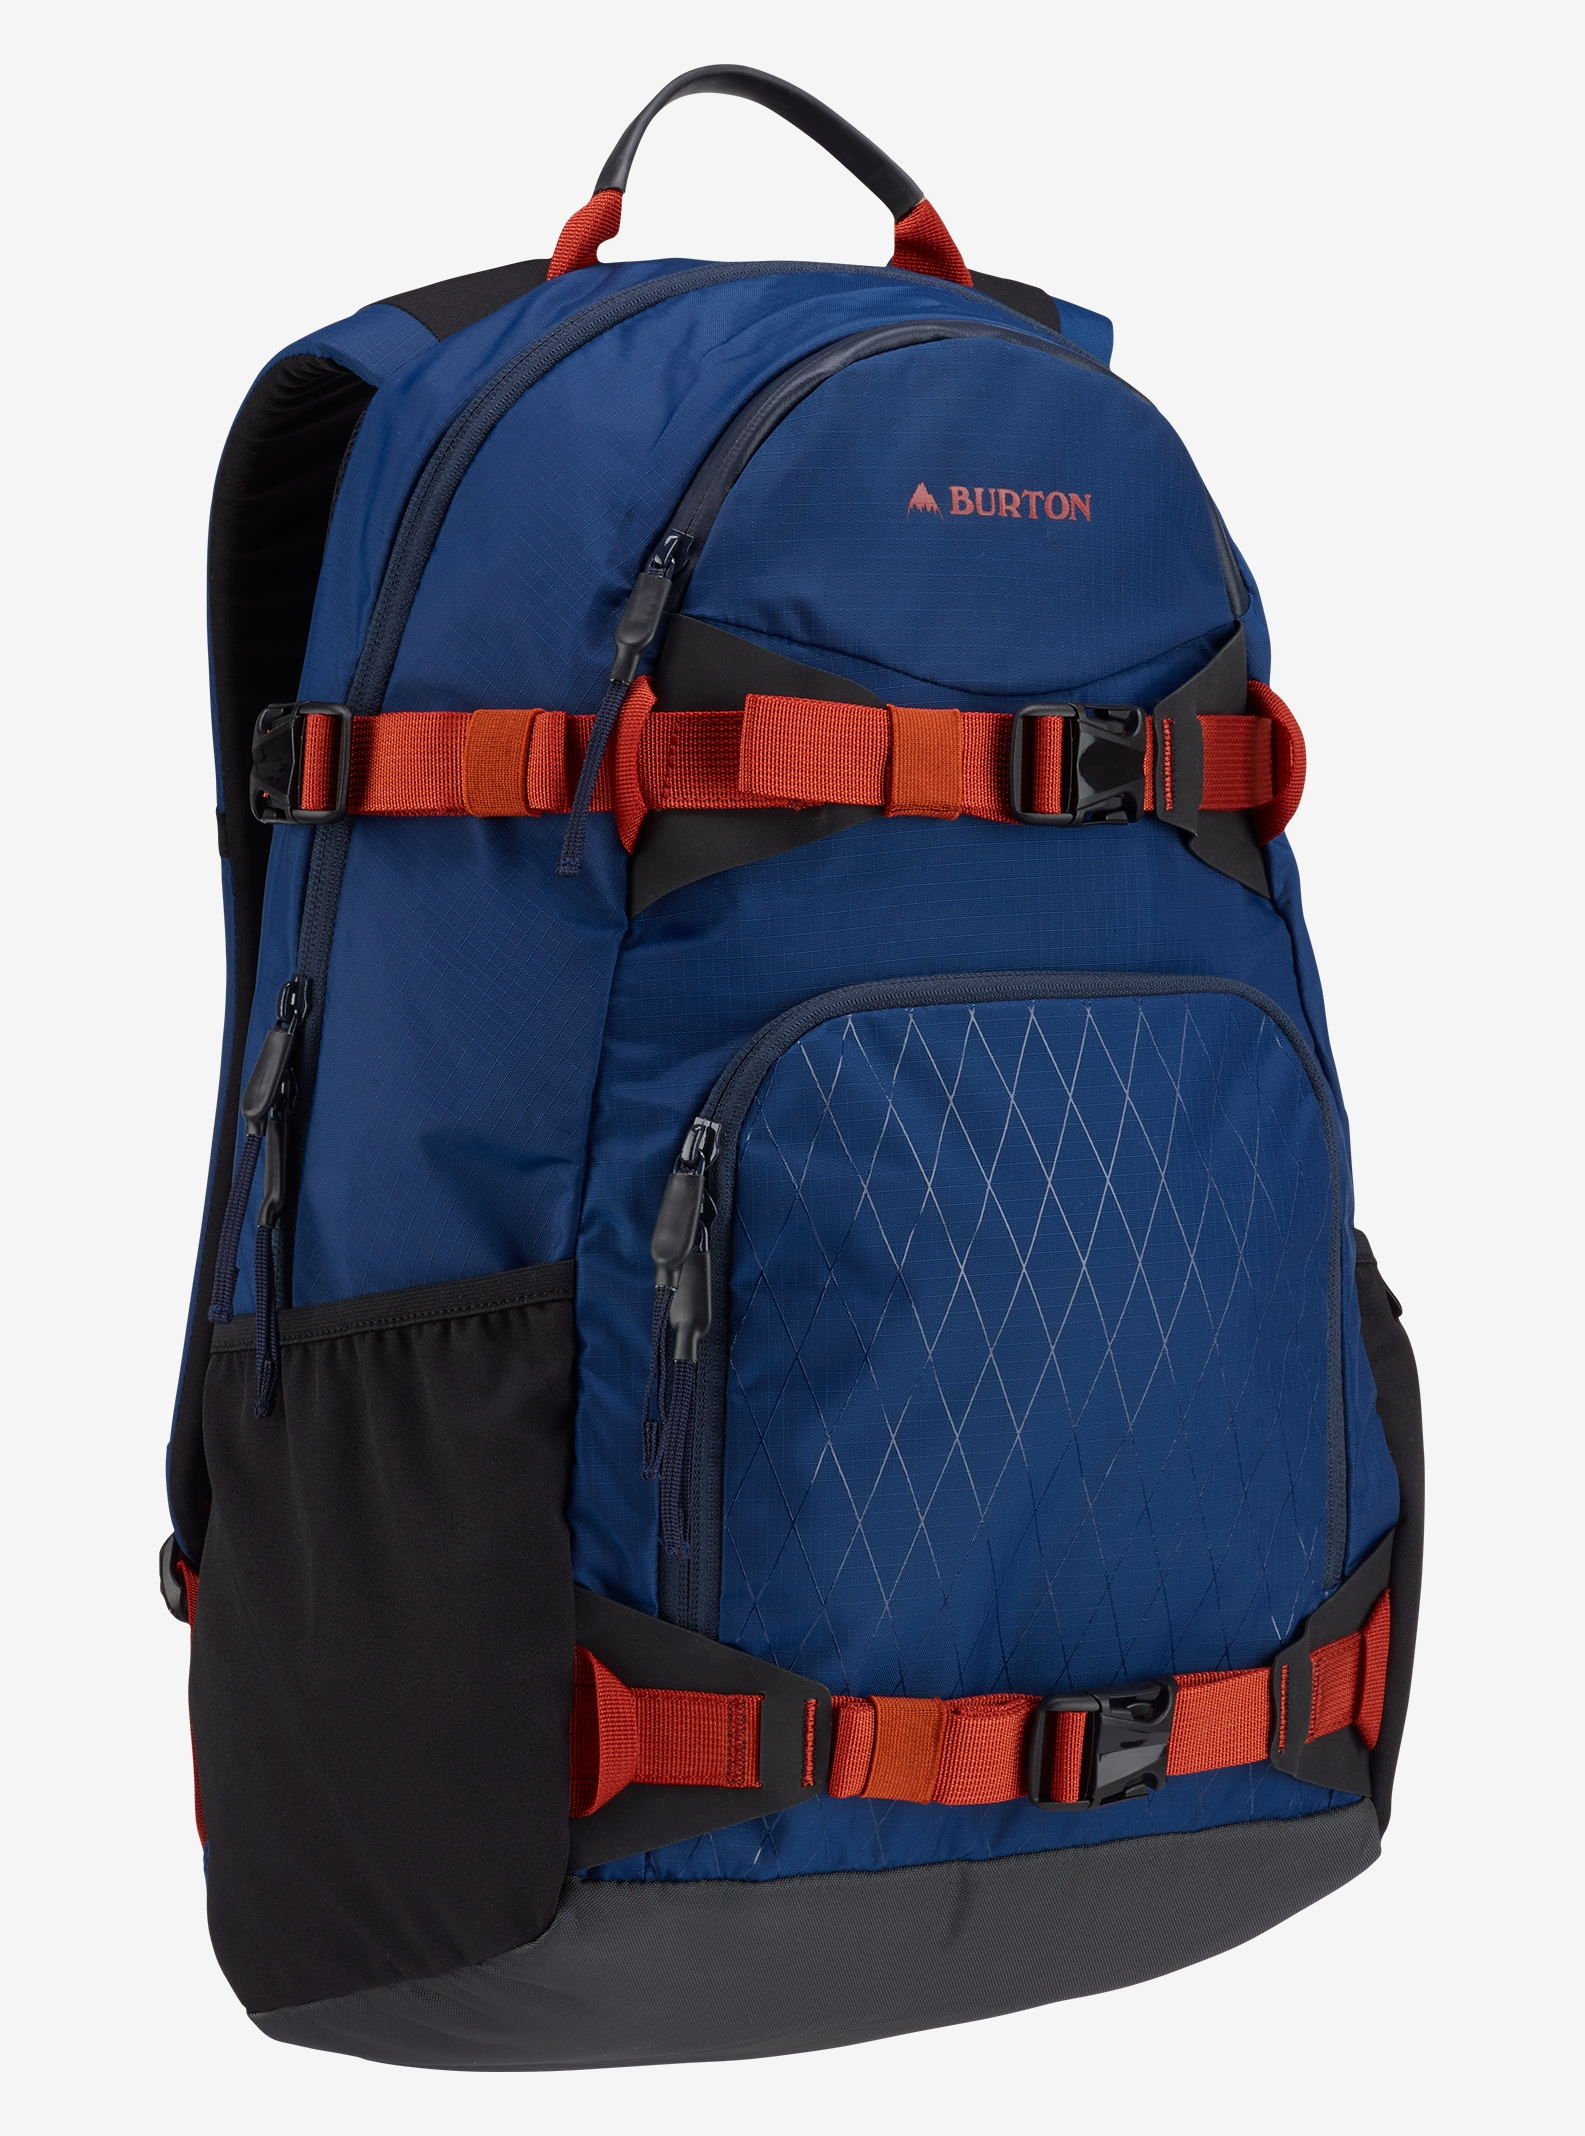 Burton Rider's 25L Backpack 2.0 shown in Eclipse Coated Ripstop